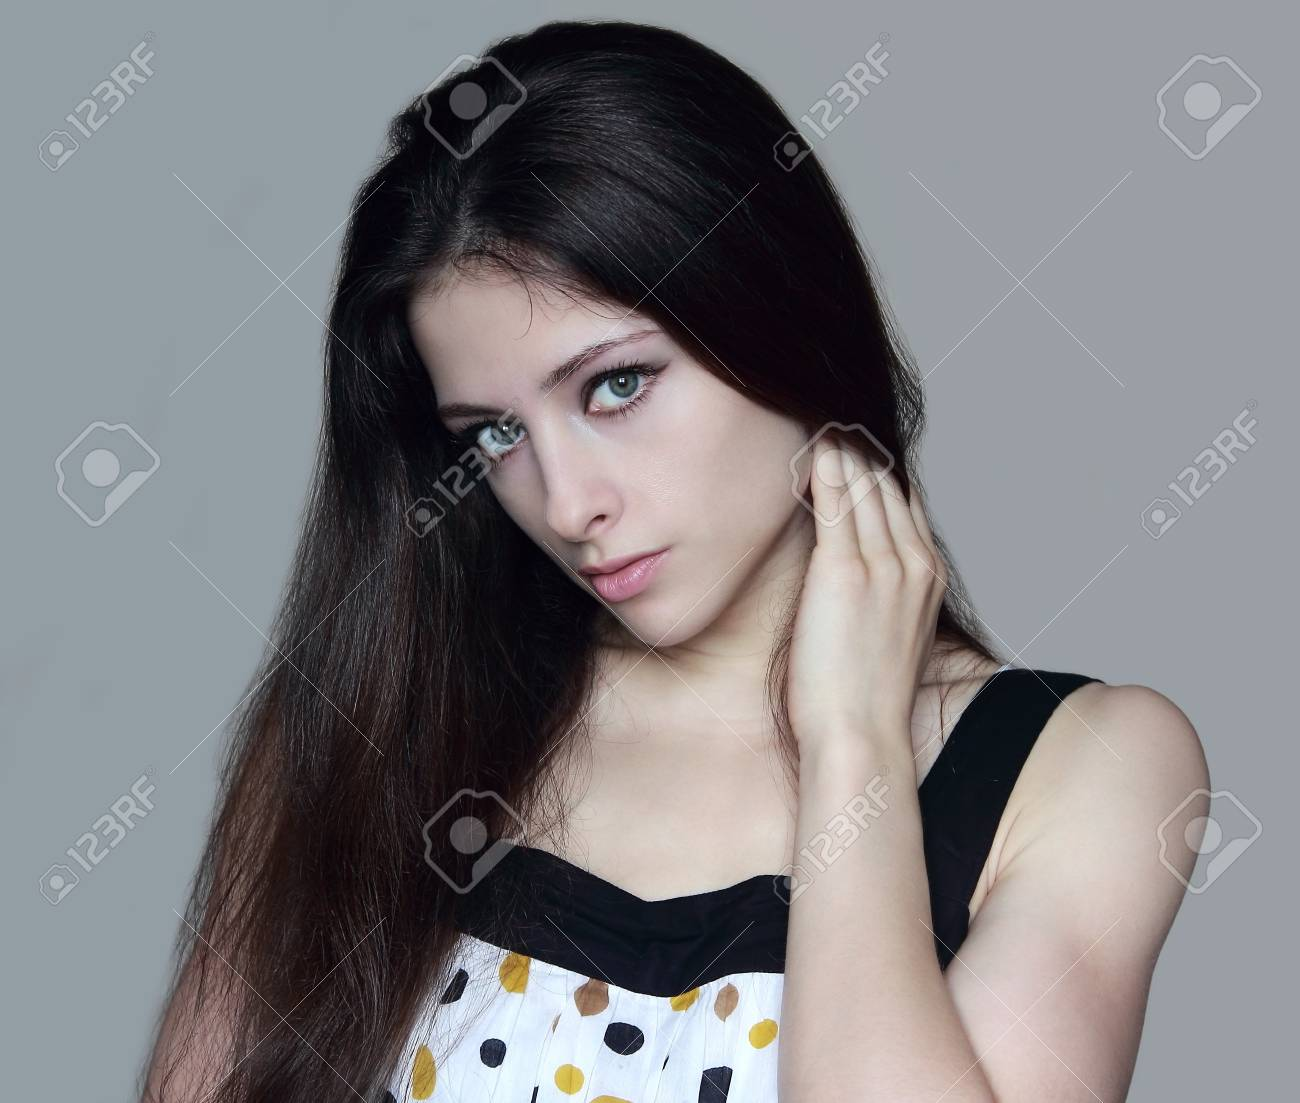 Beautiful girl holding hand long hair and looking sexy  Isolated portrait Stock Photo - 14715964